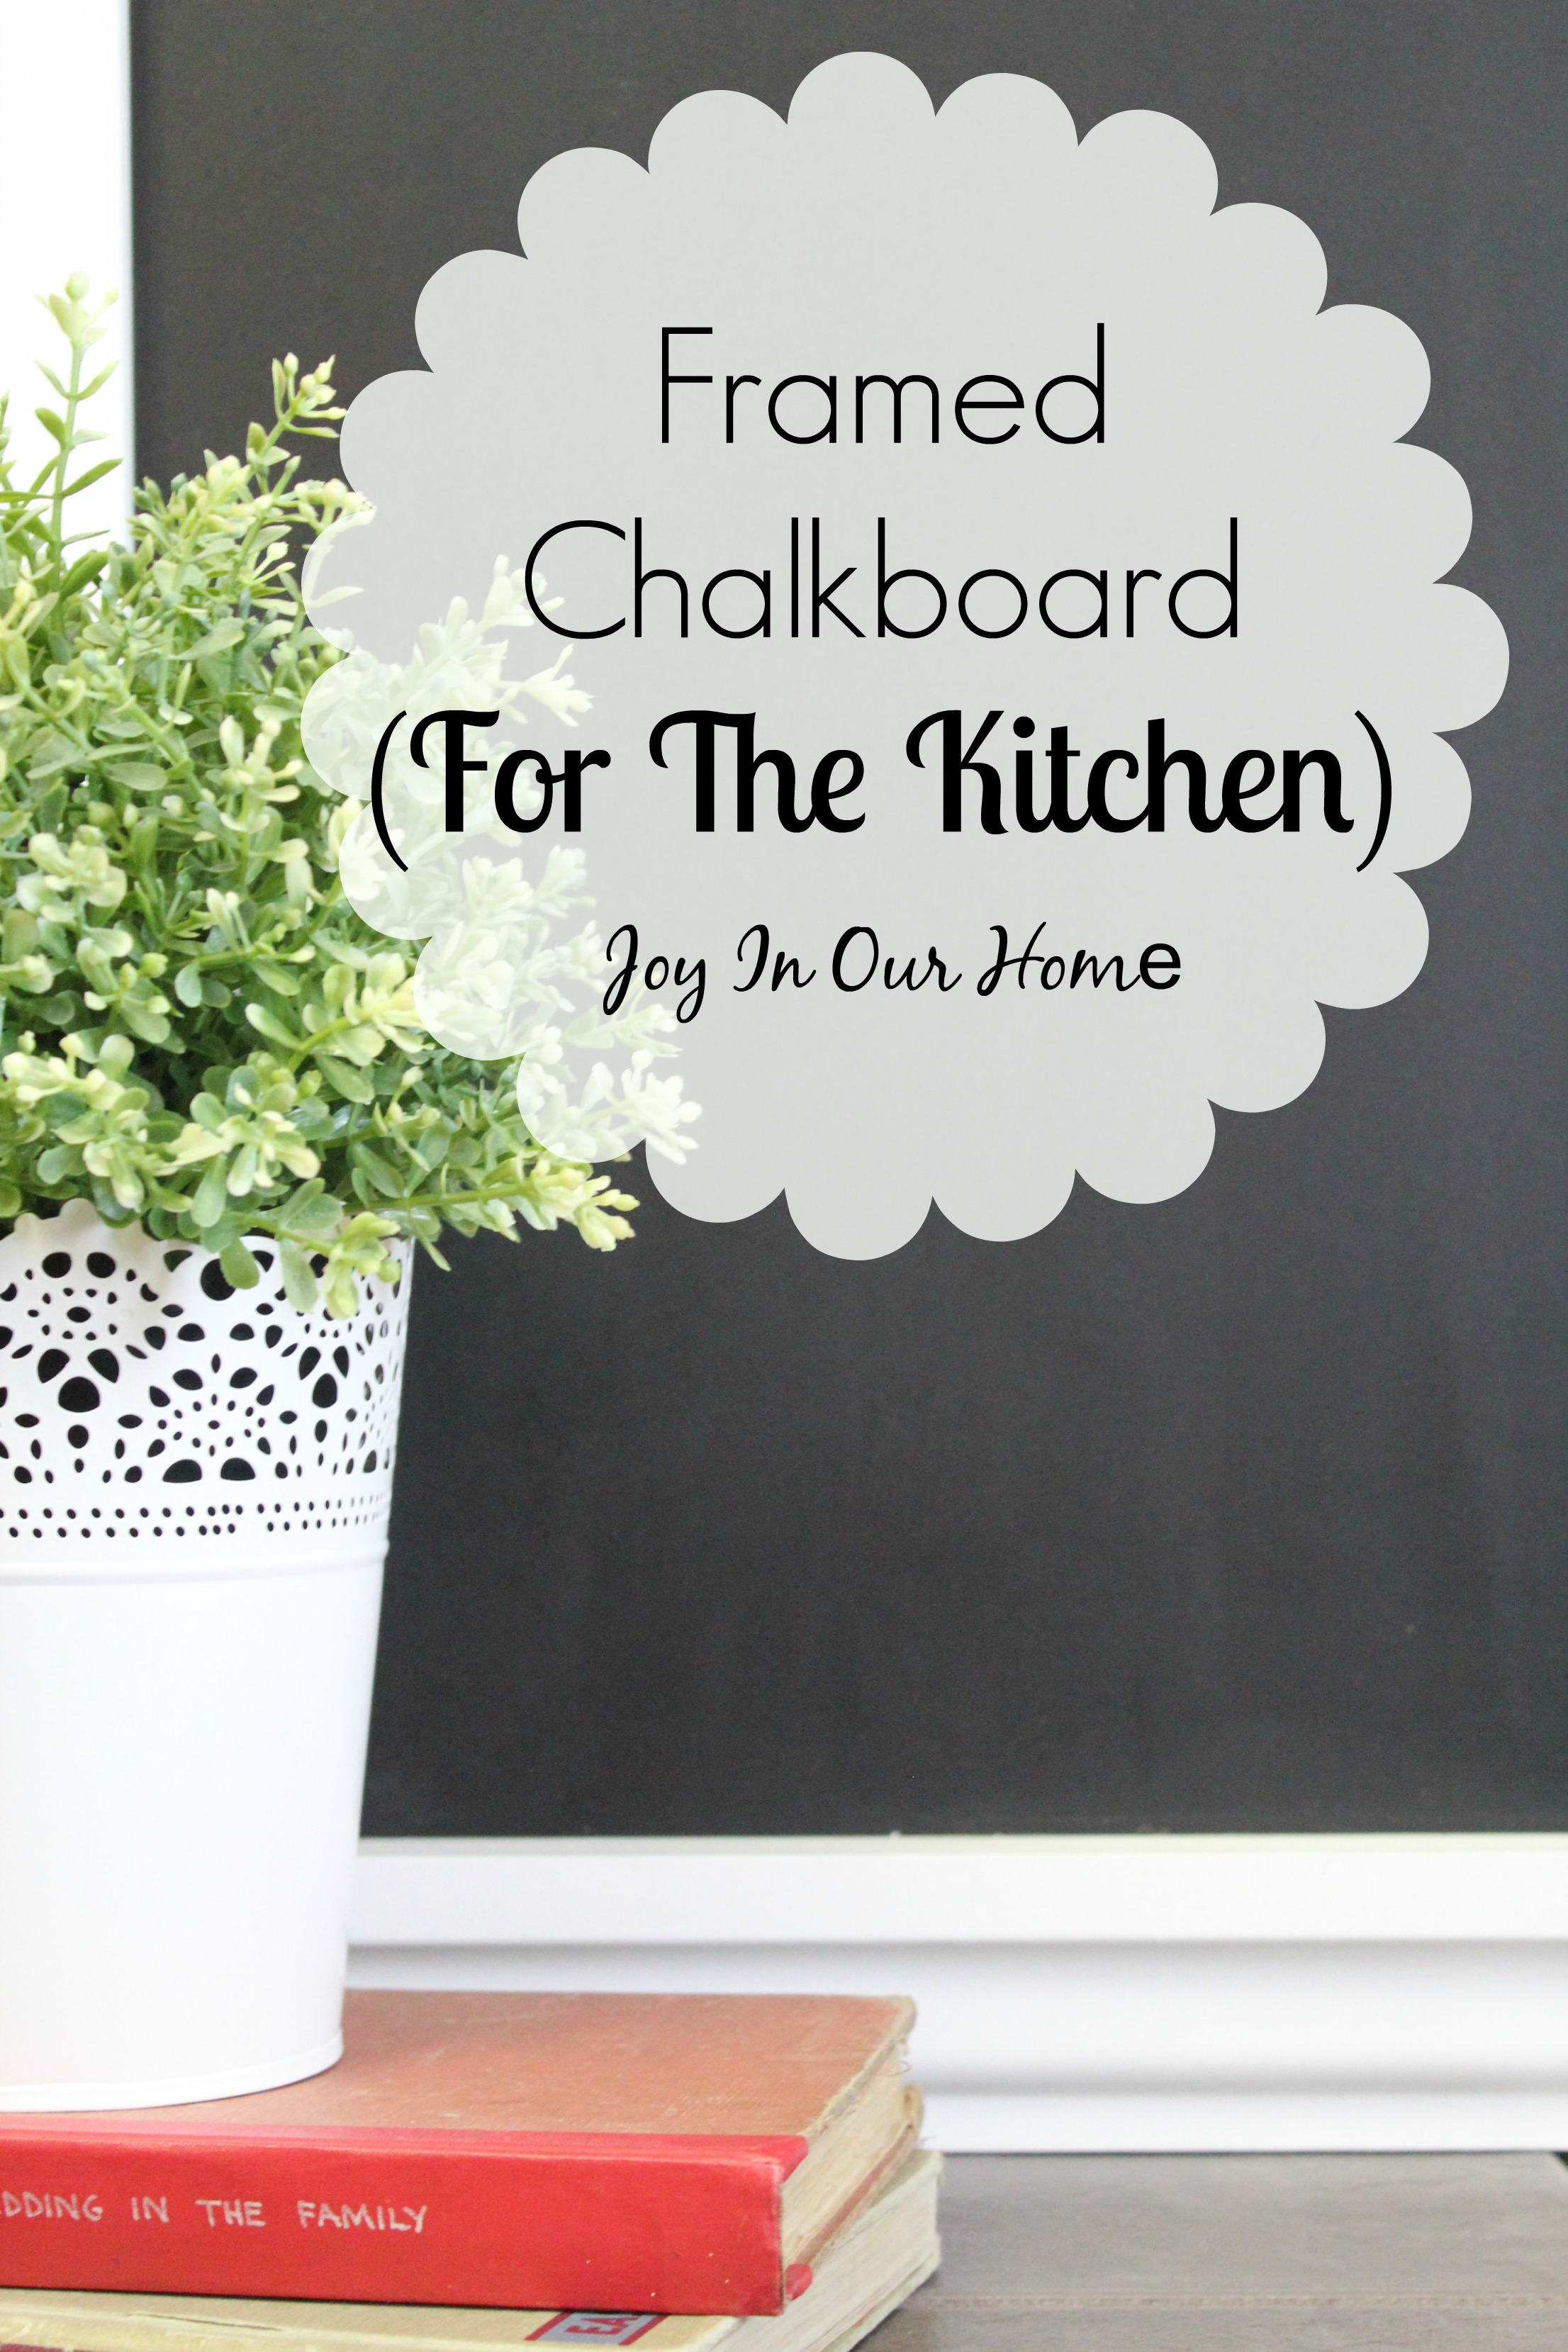 Framed Chalkboard (for the Kitchen) | Joy in Our Home